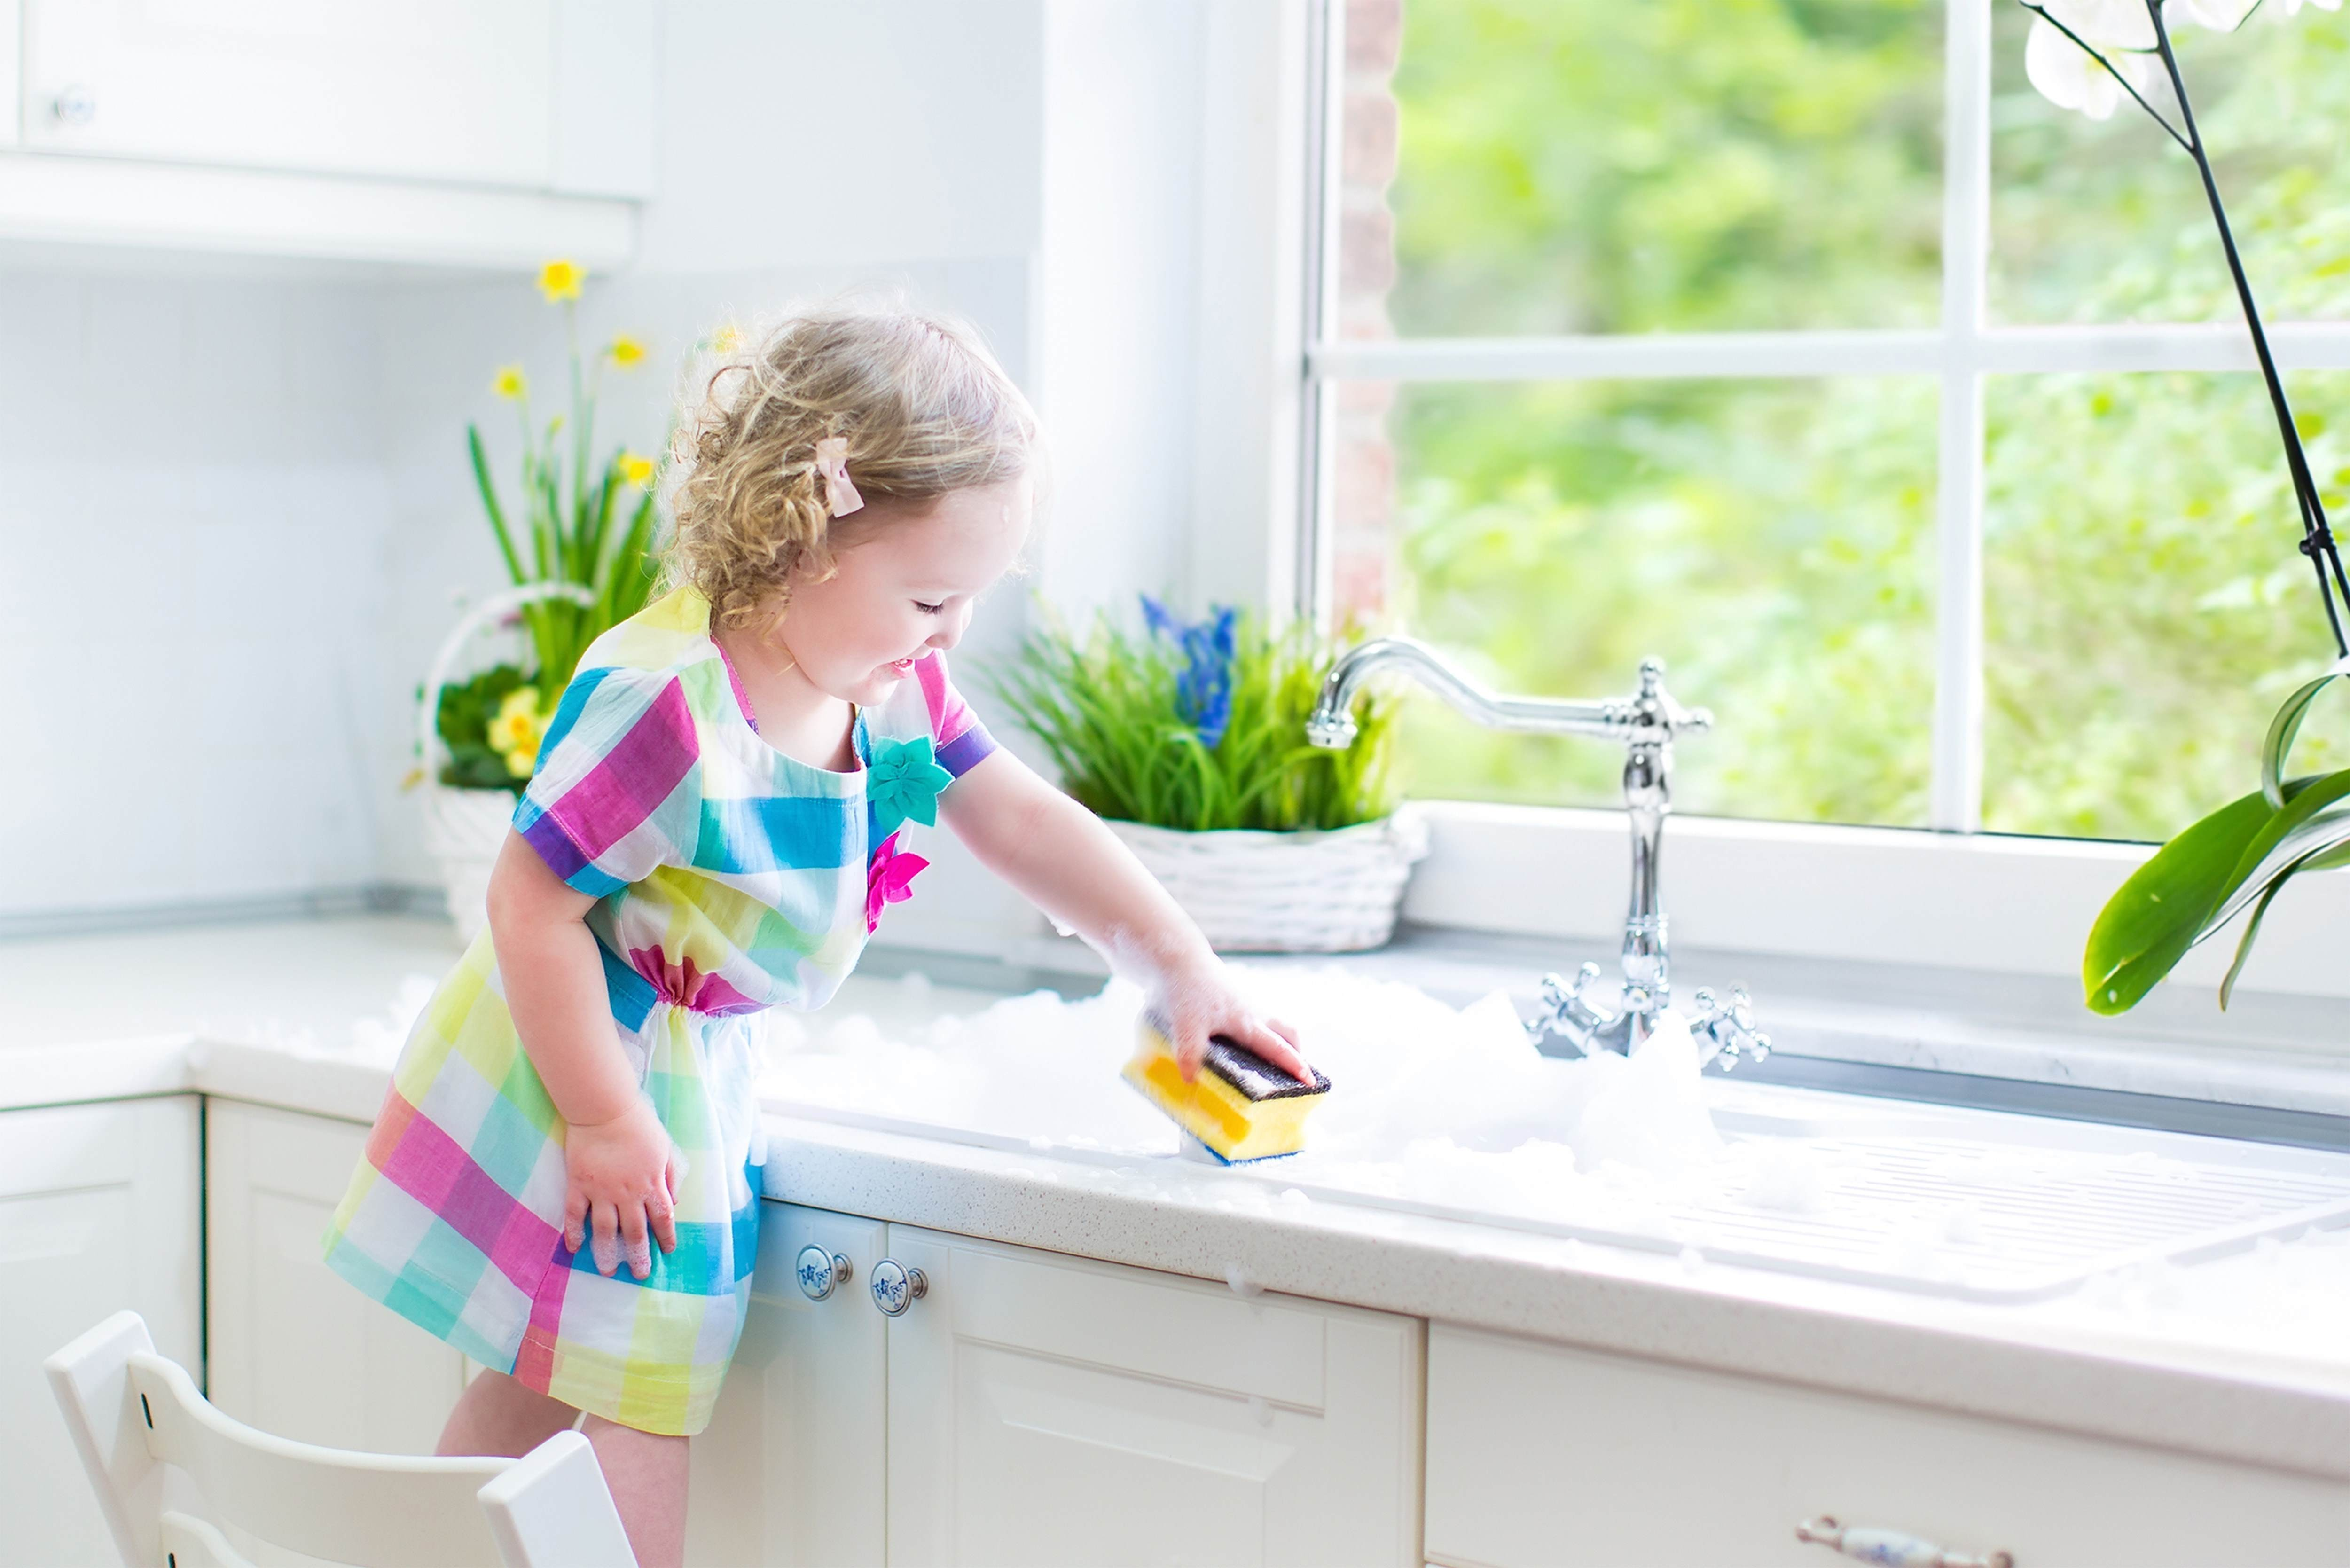 A little girl stood on a chair washing up crockery in a sink